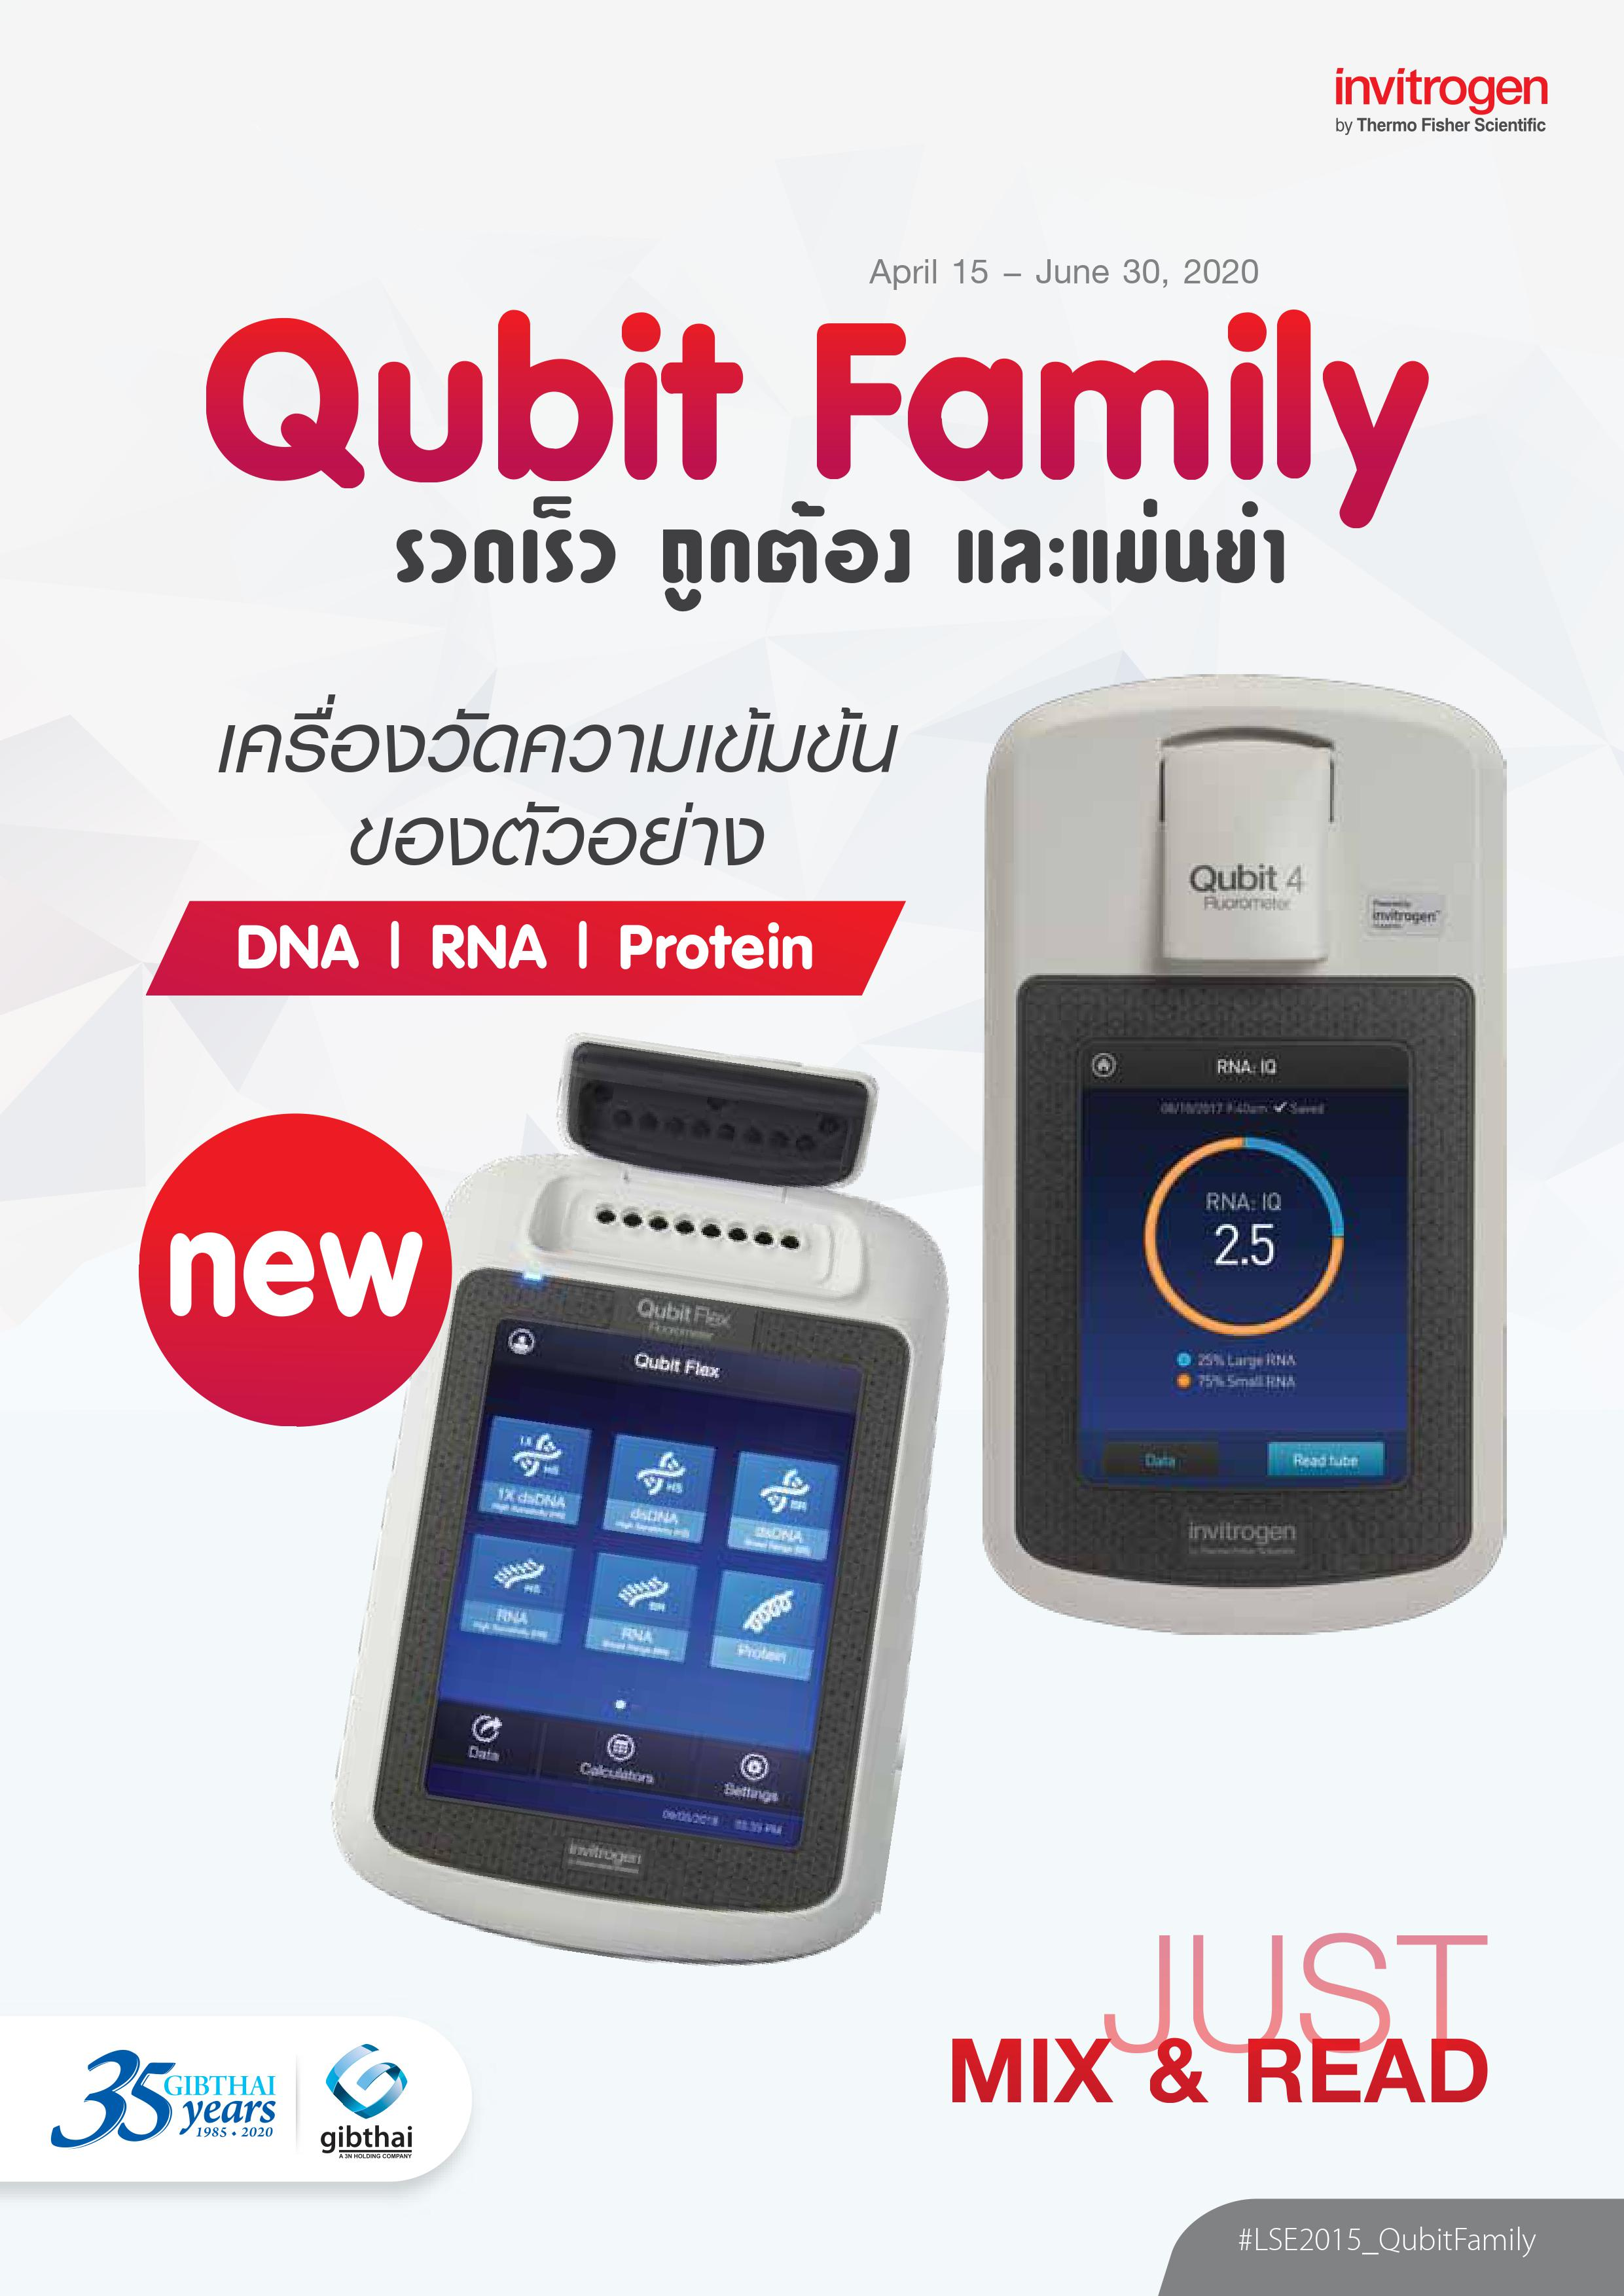 Qubit Family